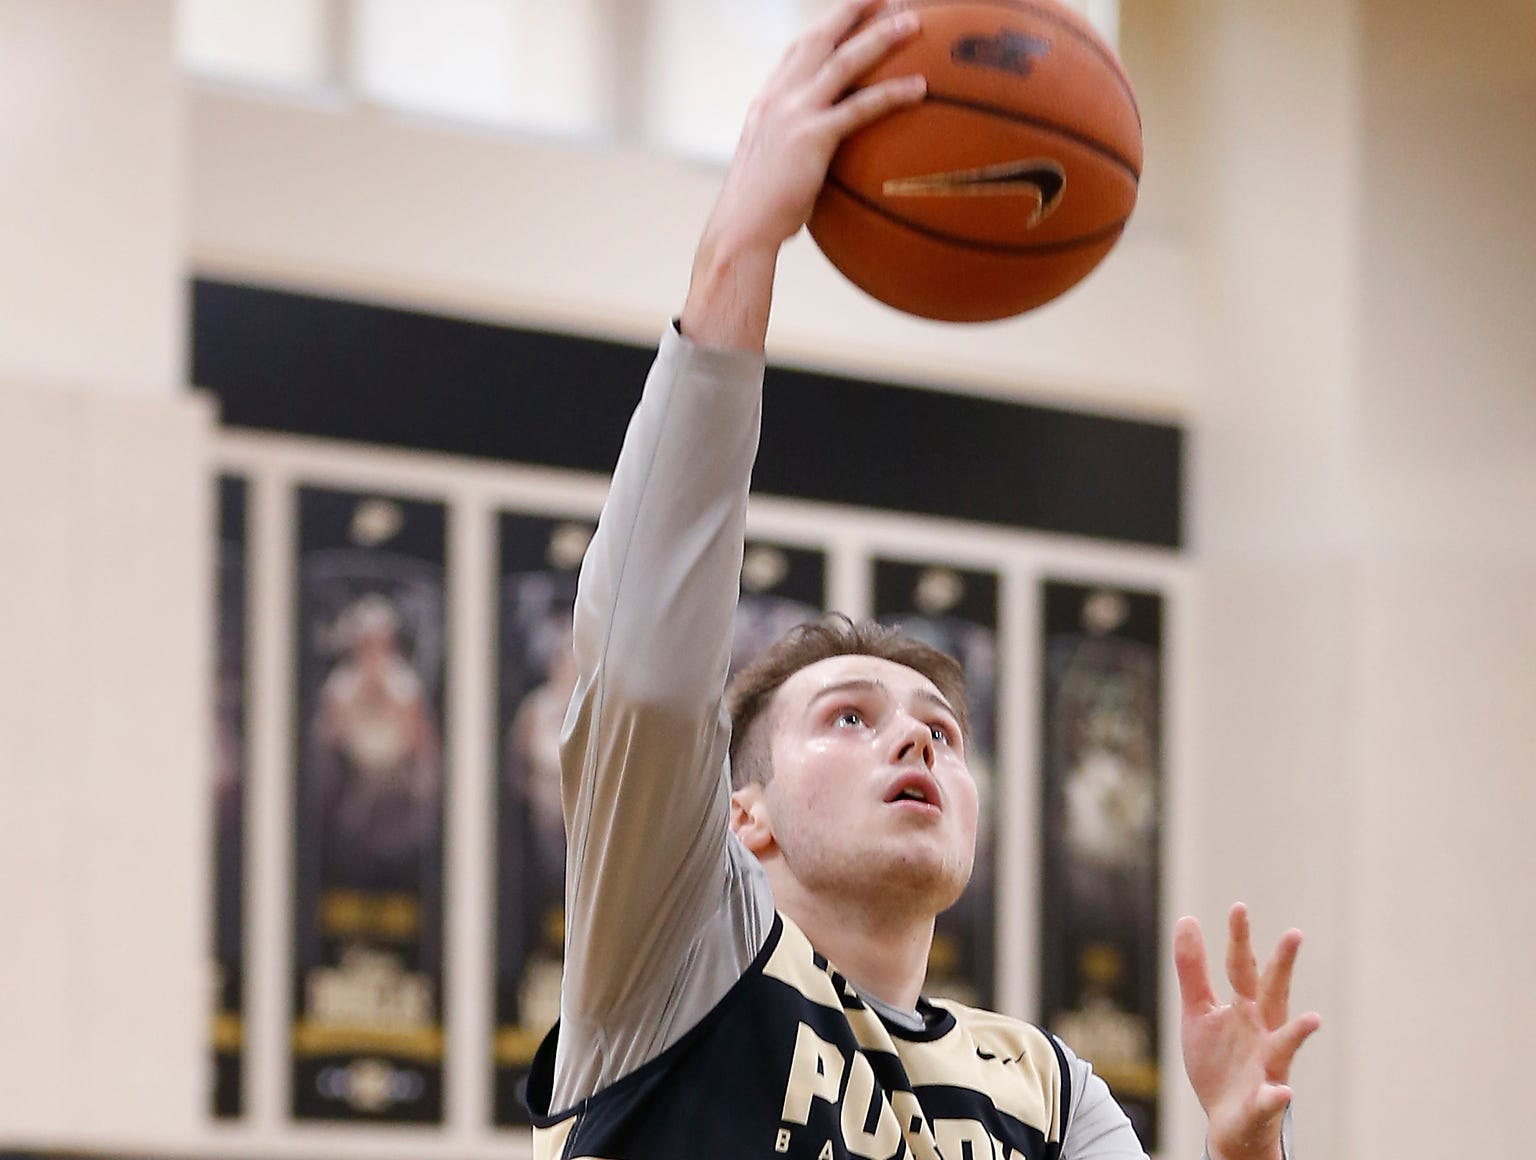 Sasha Stefanovic with a layup during the first official practice of the season for Purdue men's basketball Tuesday, September 25, 2018, at Cardinal Court in Mackey Arena.